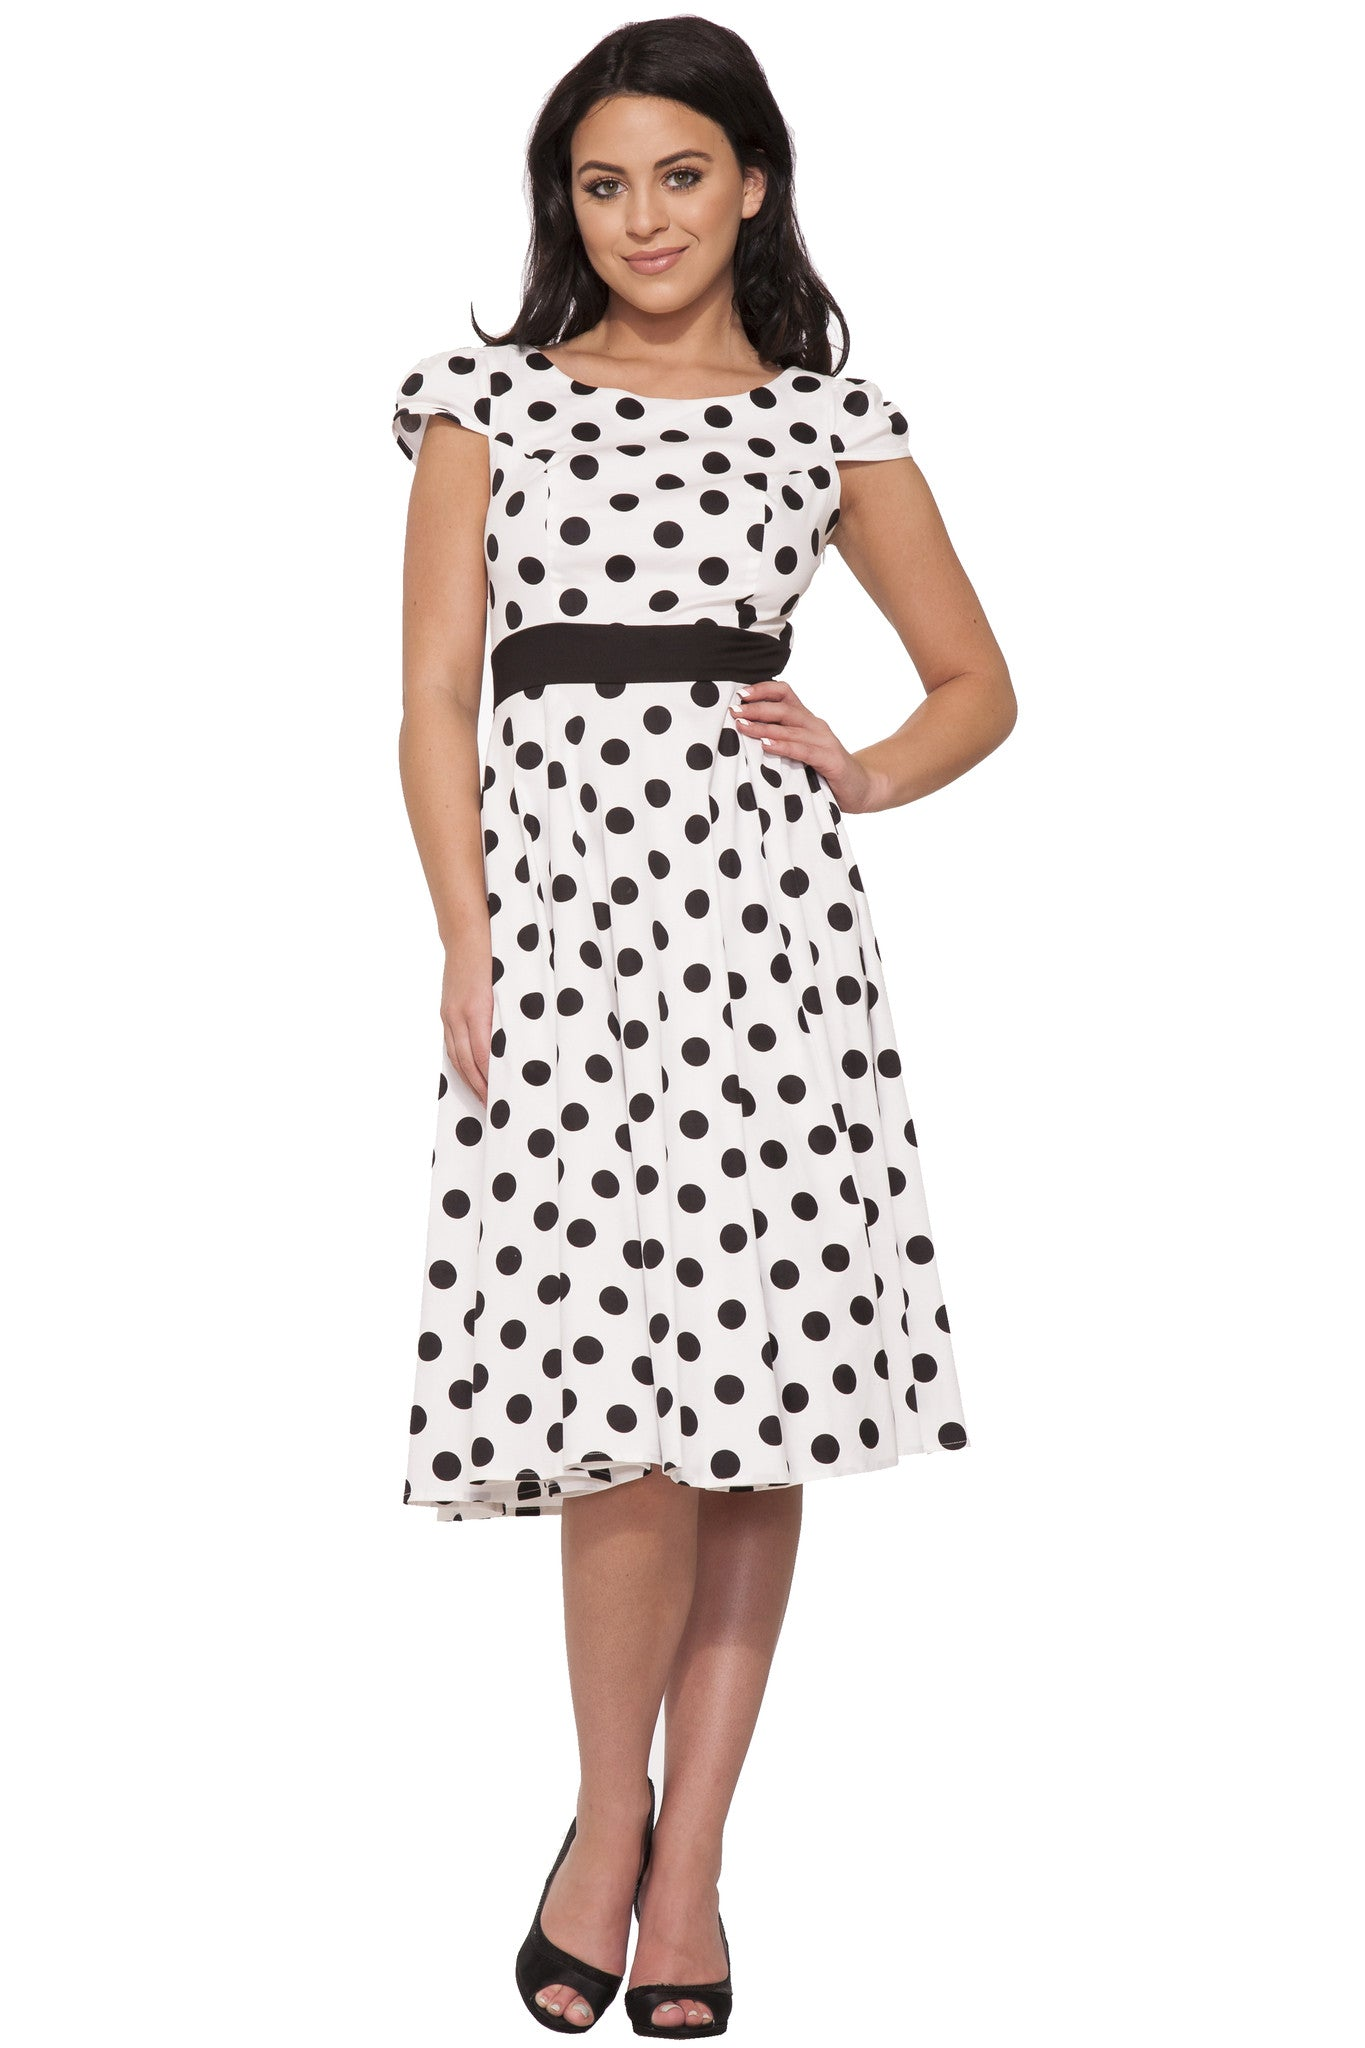 Hearts and Roses of London Dancing Dots Full Swing Dress,Dress,Hearts and Roses London - Discount Divas